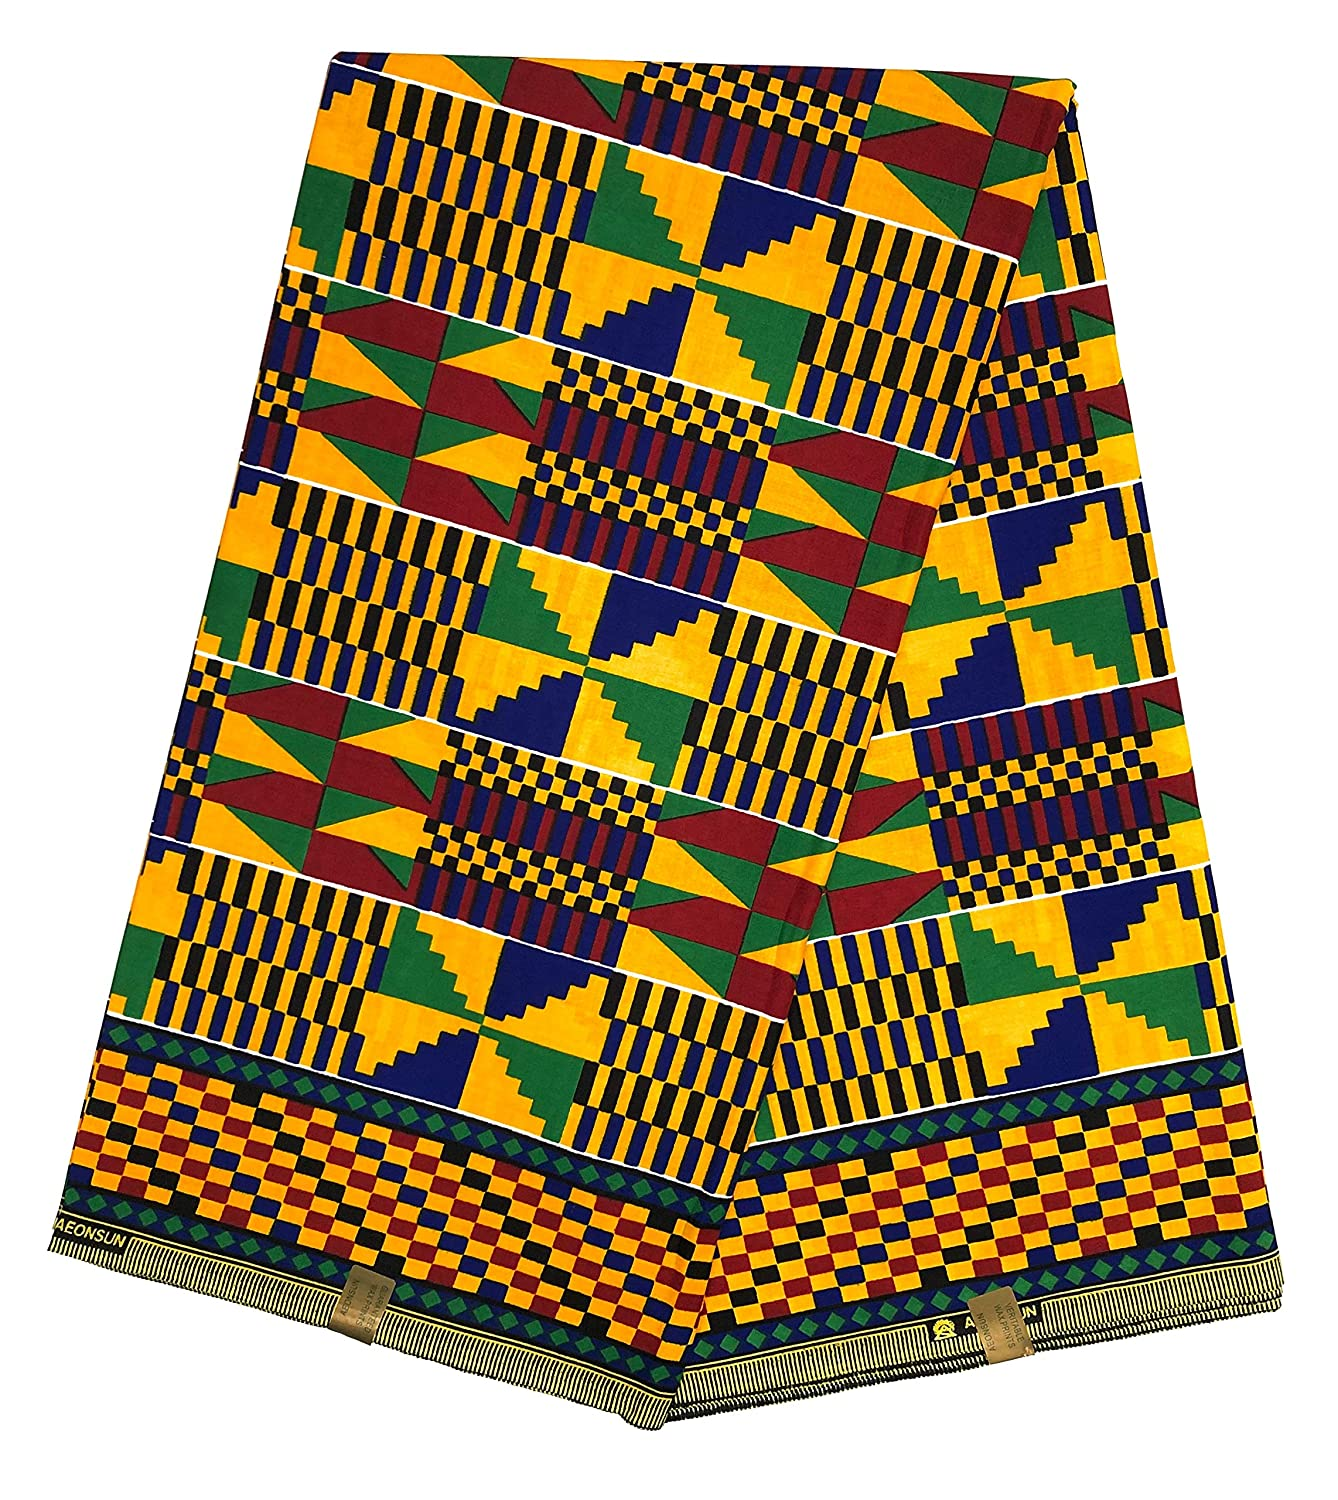 HITARGET Wax Pagne Tissu Africain Kinte Kente Kita Collection Original 6 Yards imprim/é Top qualit/é 100/% Pur Coton r/éf AB